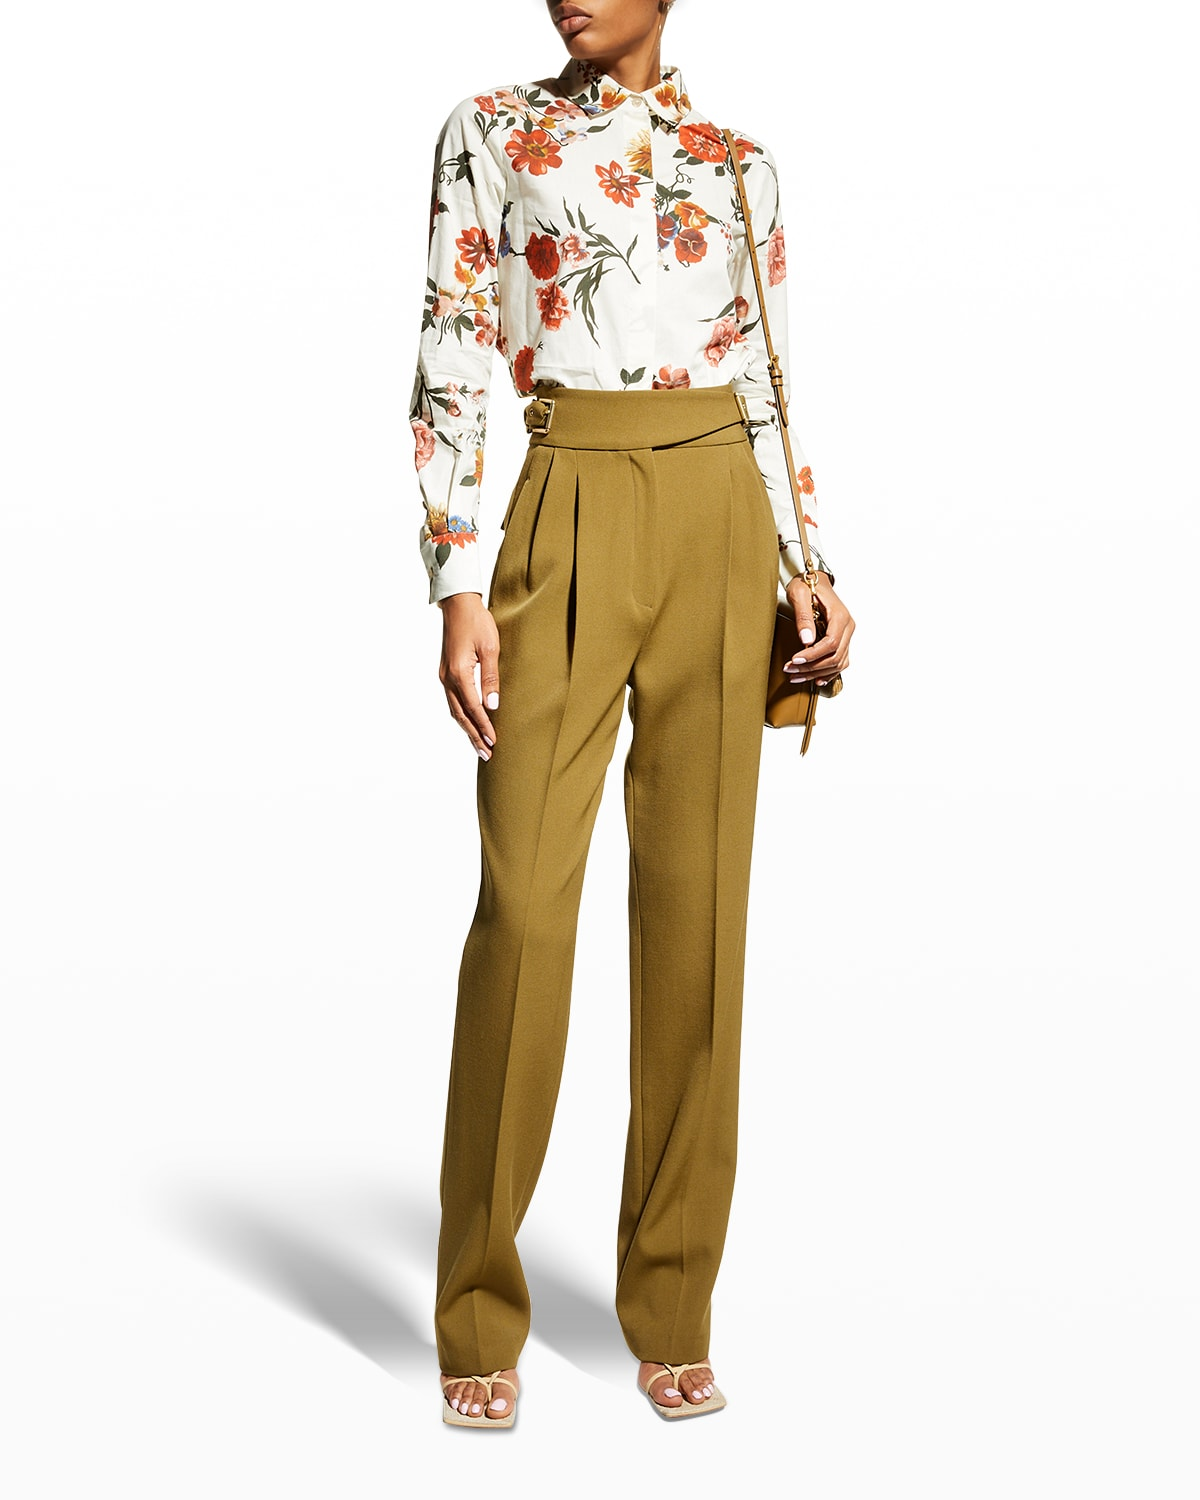 Thelma Floral-Print Blouse